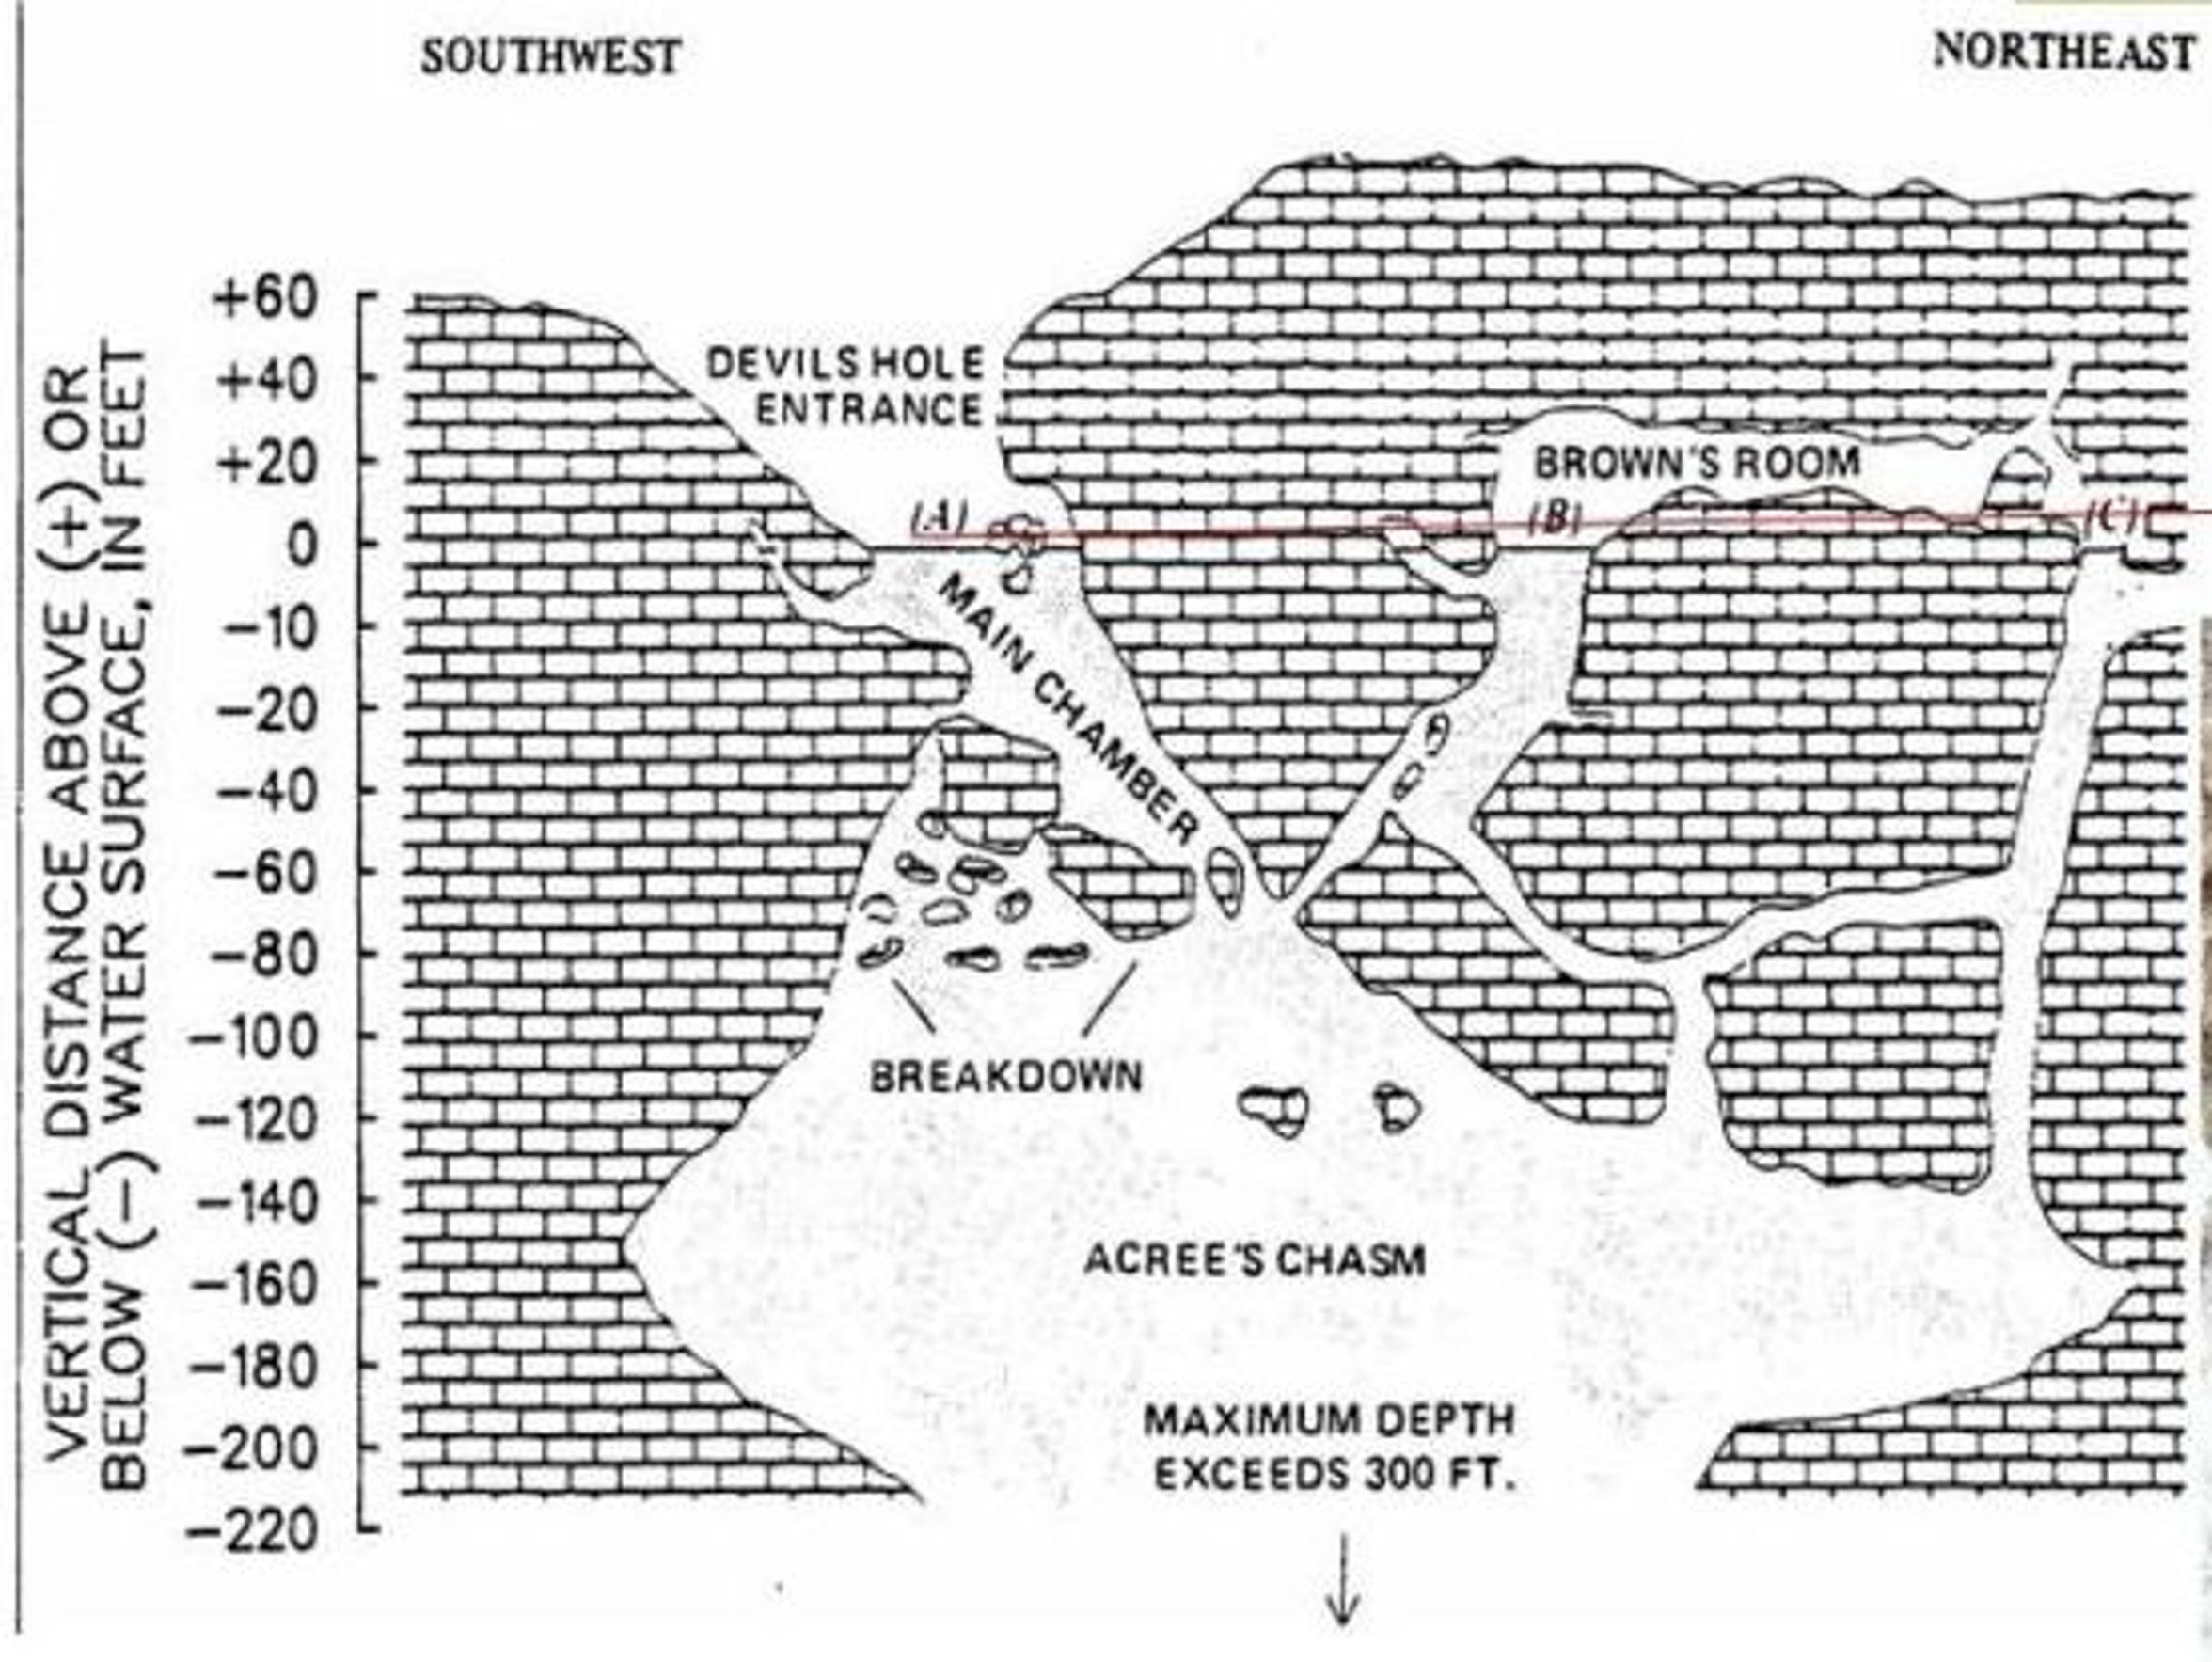 A cutaway map of Devils Hole shows the various rooms